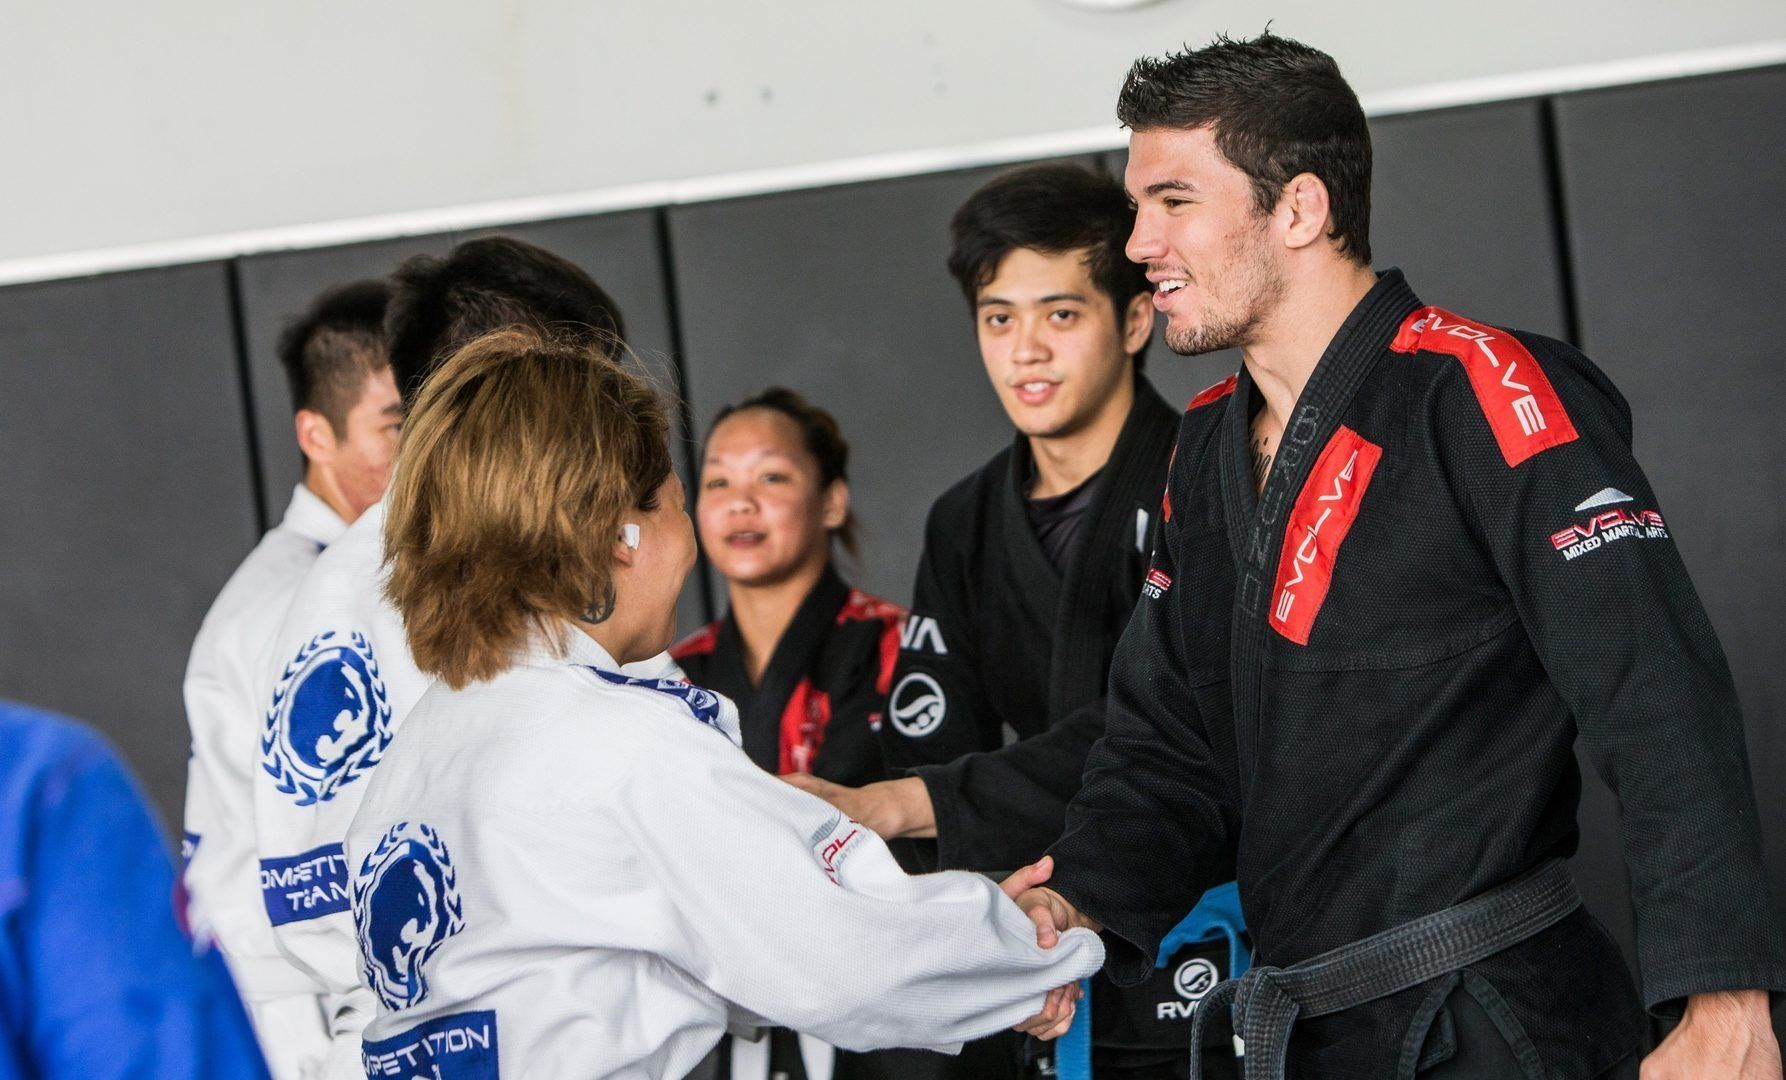 BJJ World Champion Bruno Pucci teaches at Evolve MMA